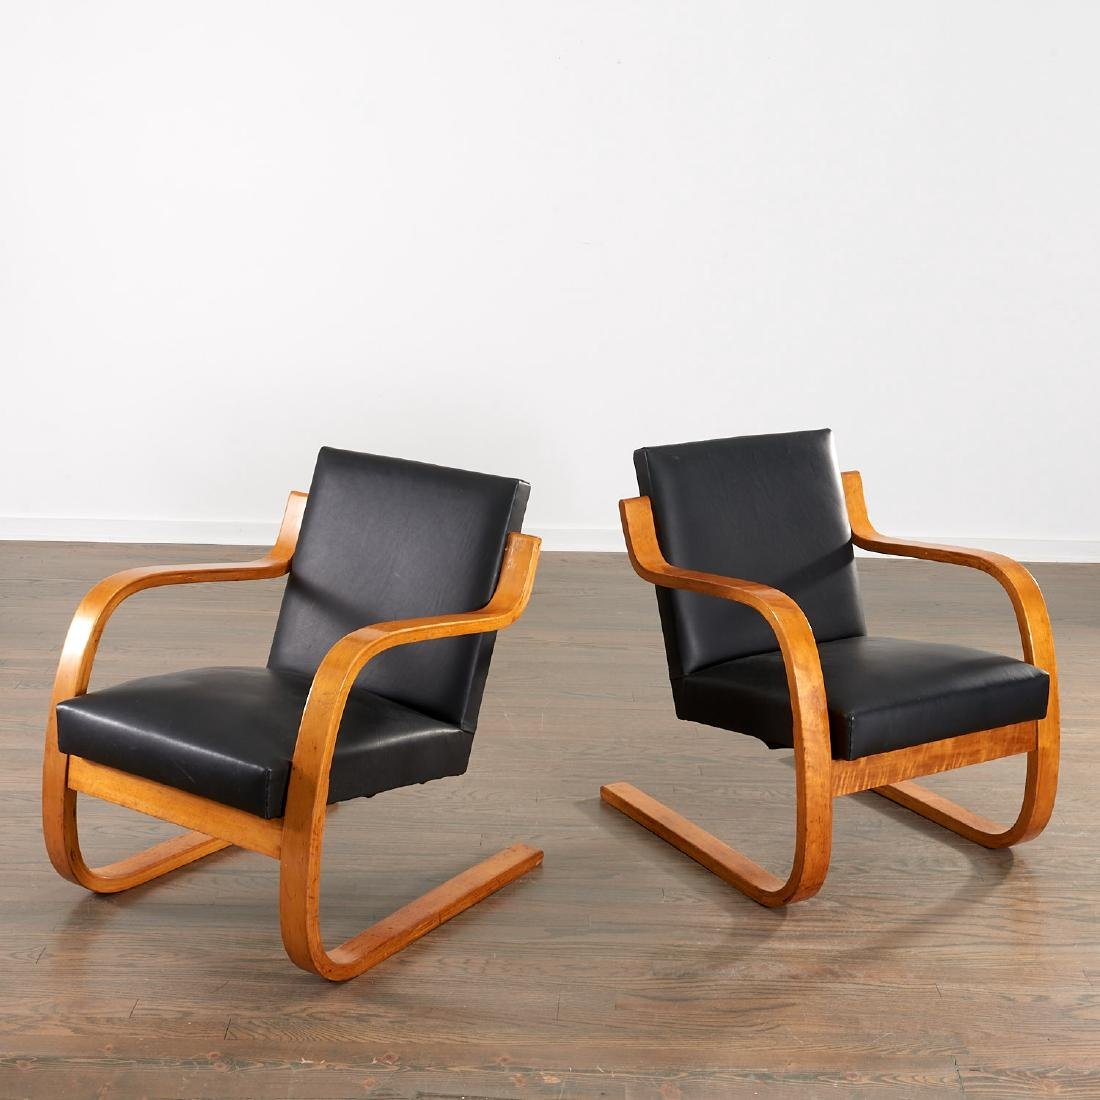 Vintage Pair Alvar Aalto cantilevered chairs